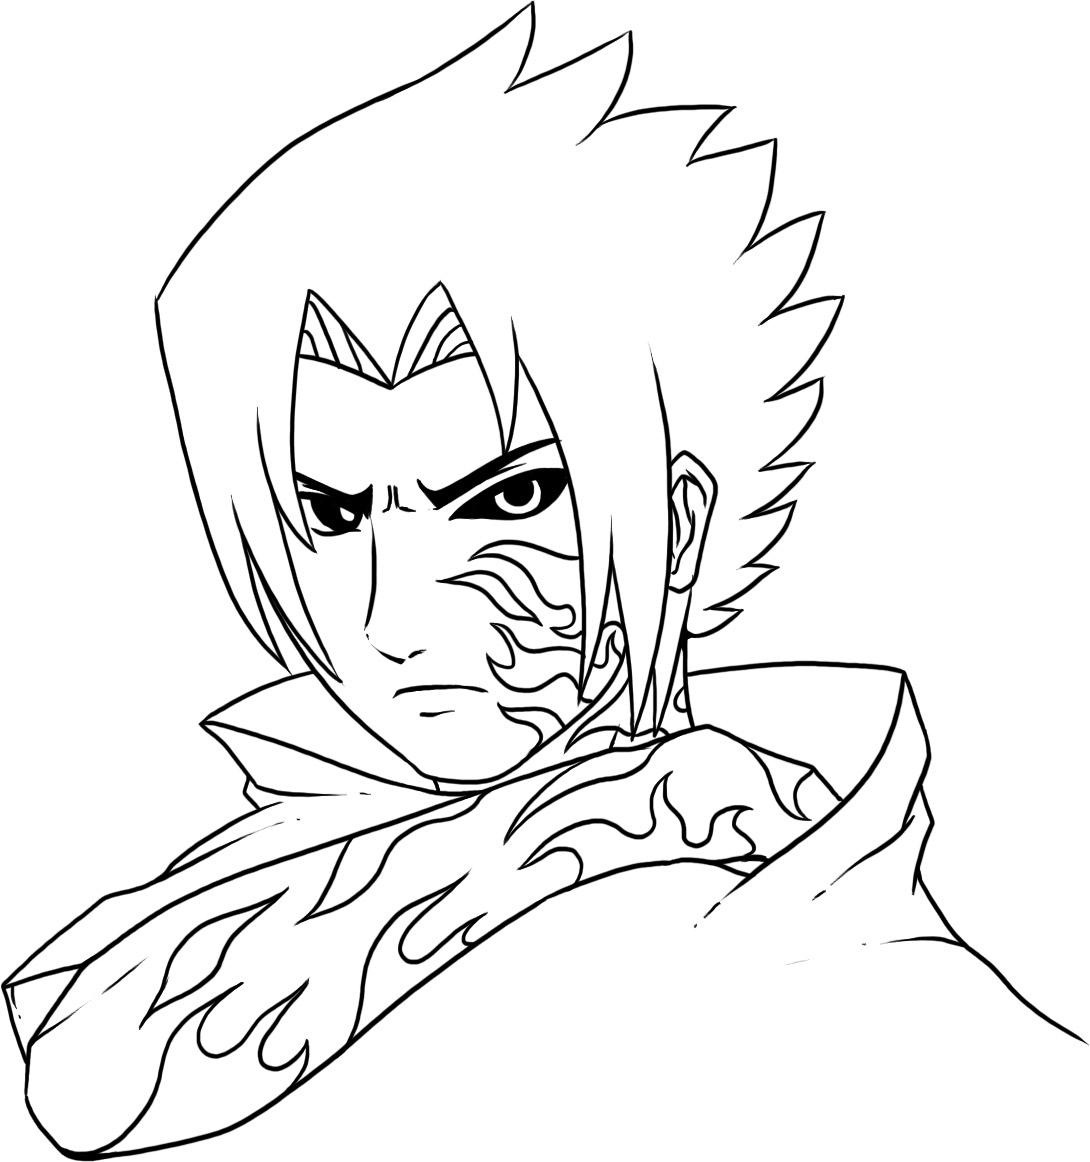 naruto shippuden coloring pages to print - Naruto Coloring Pages